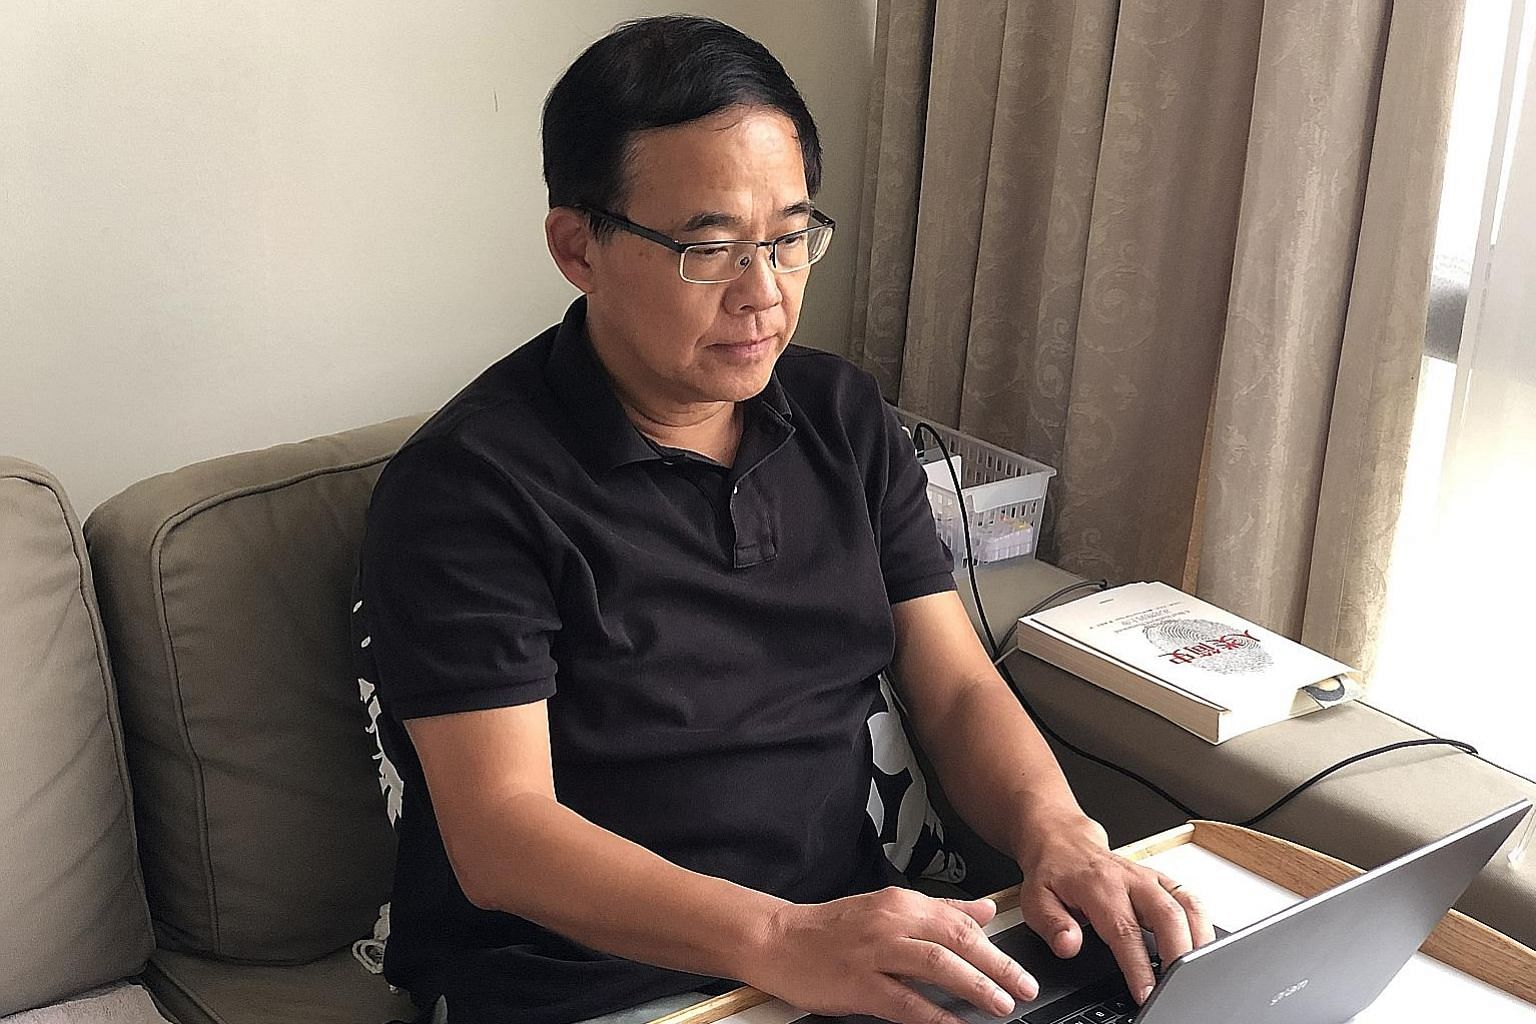 Professor Wang Linfa, director of the emerging infectious diseases programme at Duke-NUS Medical School, working at home while on self-imposed home quarantine after a visit to Wuhan, China.